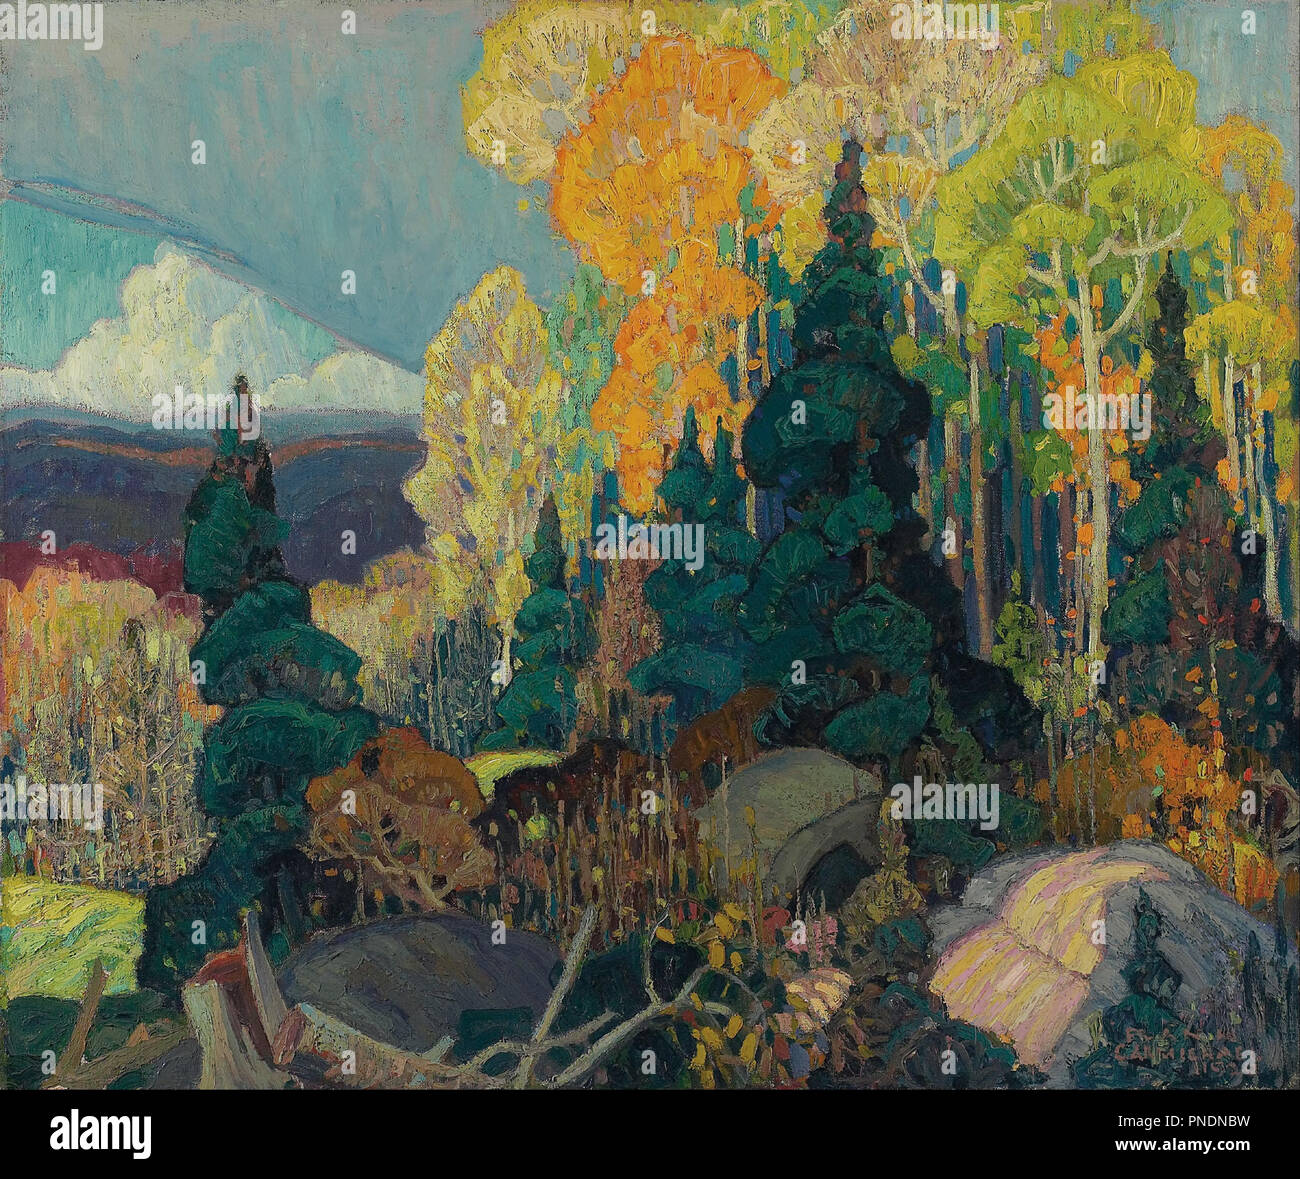 Autumn Hillside. Date/Period: 1920. Painting. Oil on canvas. Width: 91.4 cm. Height: 76 cm (overall). Author: FRANKLIN CARMICHAEL. Stock Photo